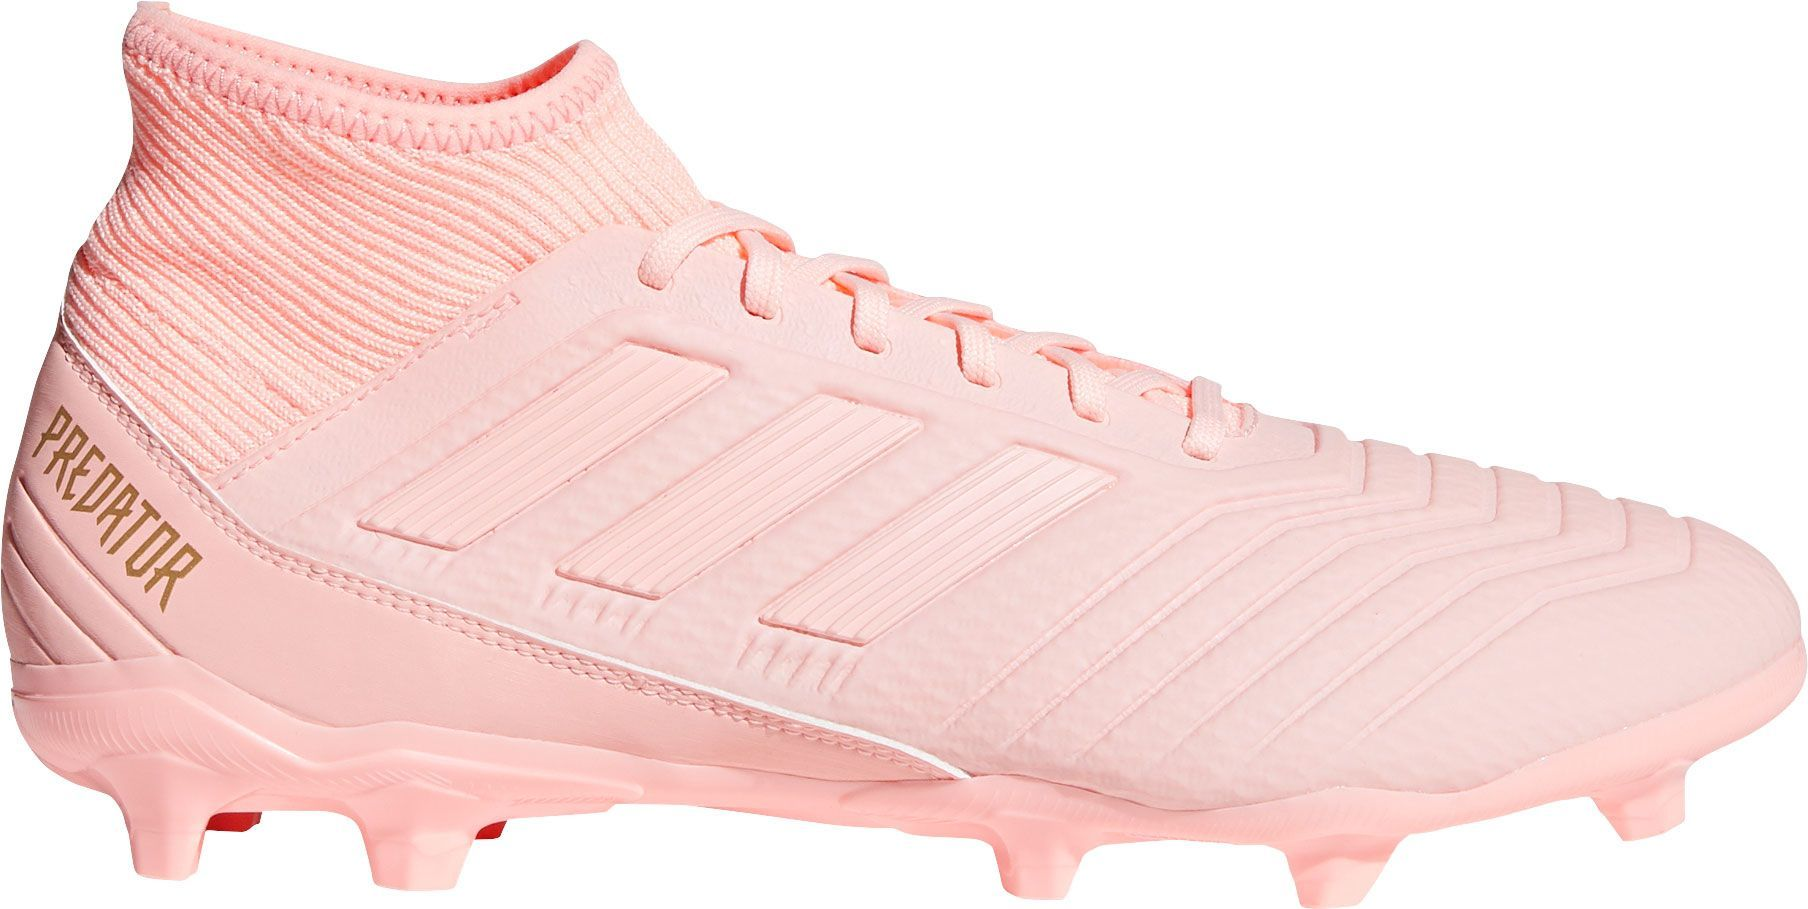 separation shoes 5befe 5f19f adidas Mens Predator 18.3 FG Soccer Cleats, Pink